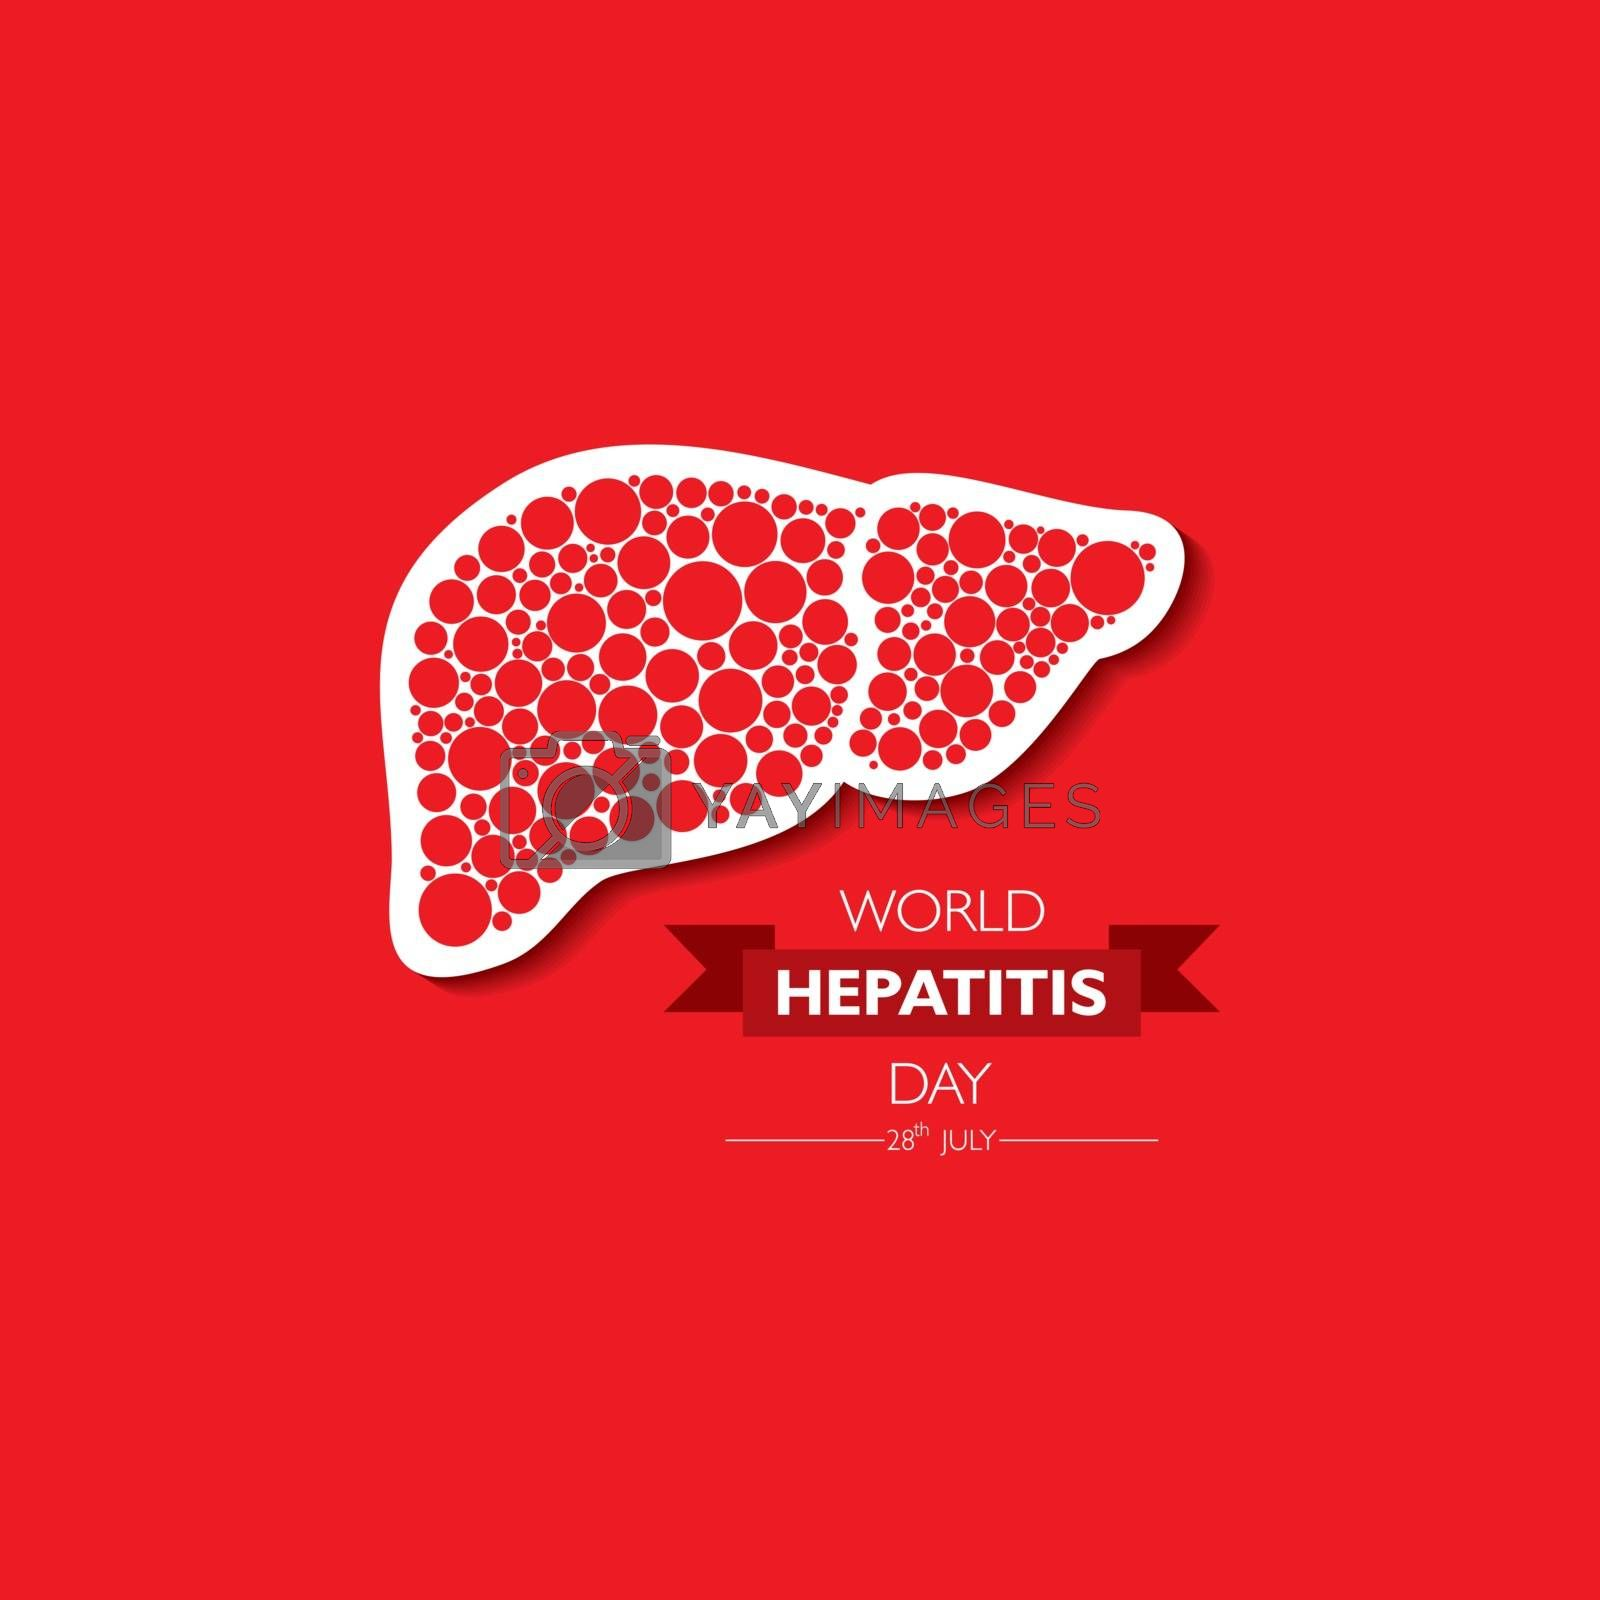 Vector Illustration,poster or banner of World Hepatitis Day observed on 28 July by graphicsdunia4you